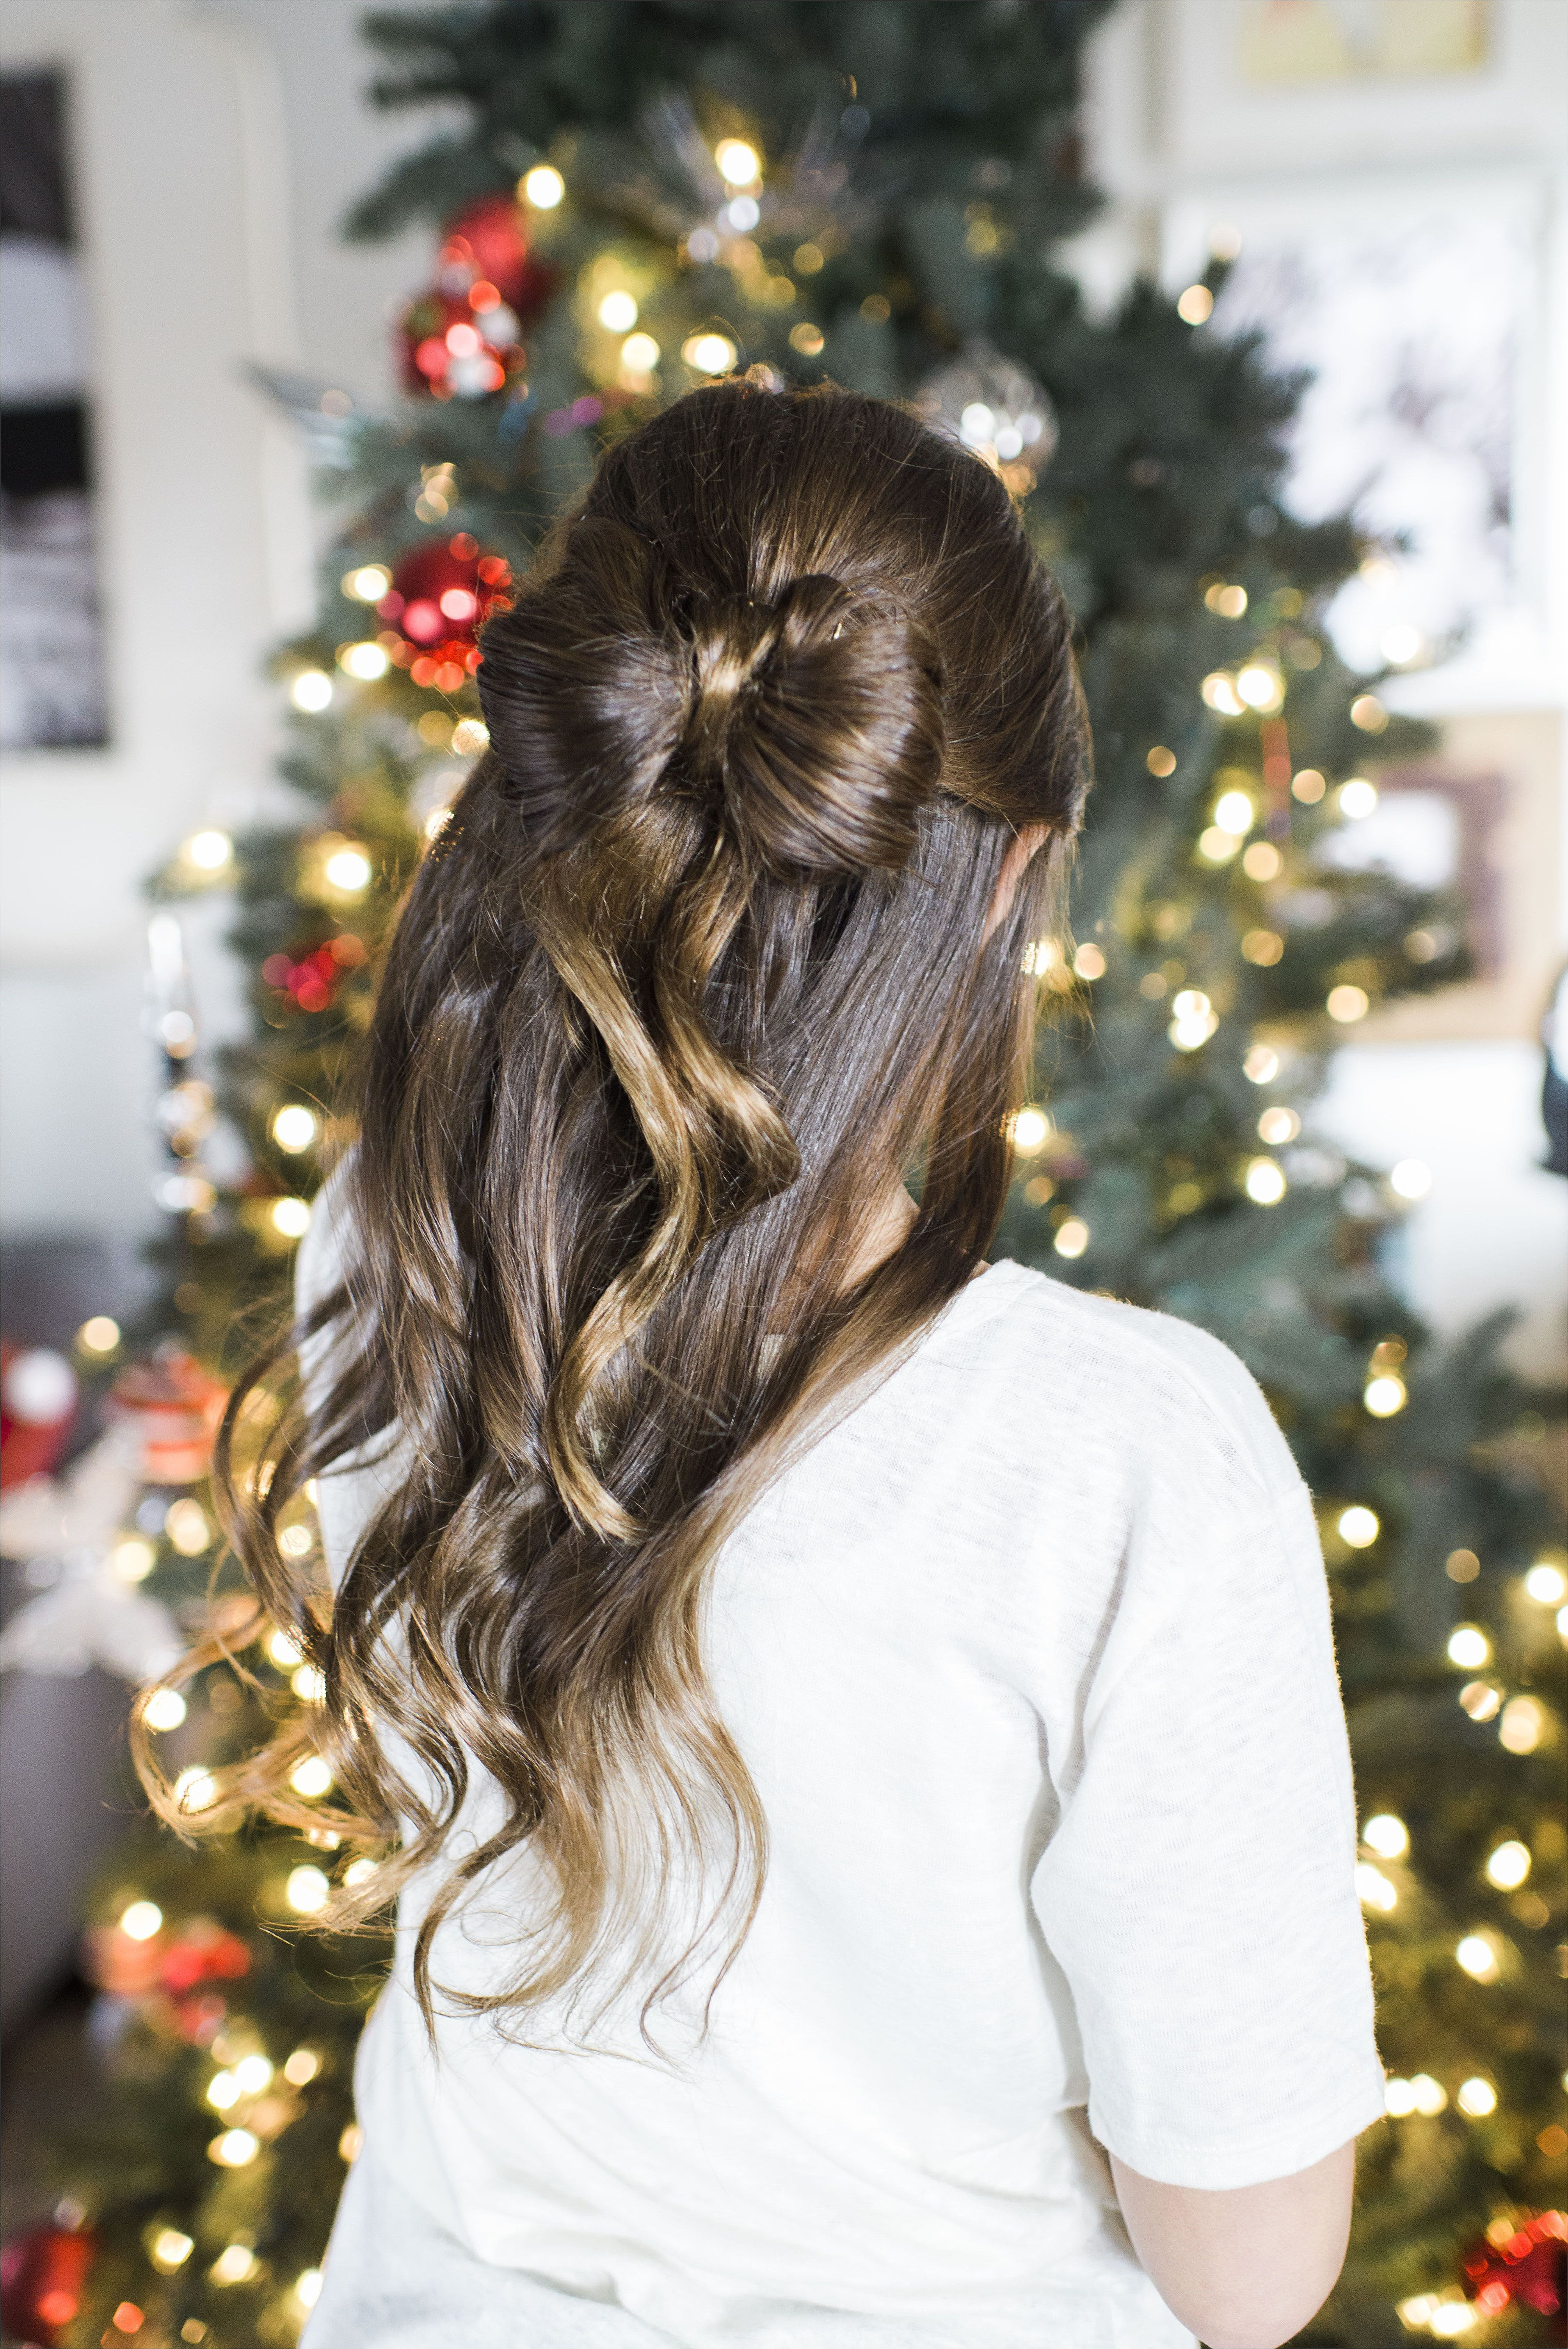 Cute christmas hairstyles bow hair for christmas pictures